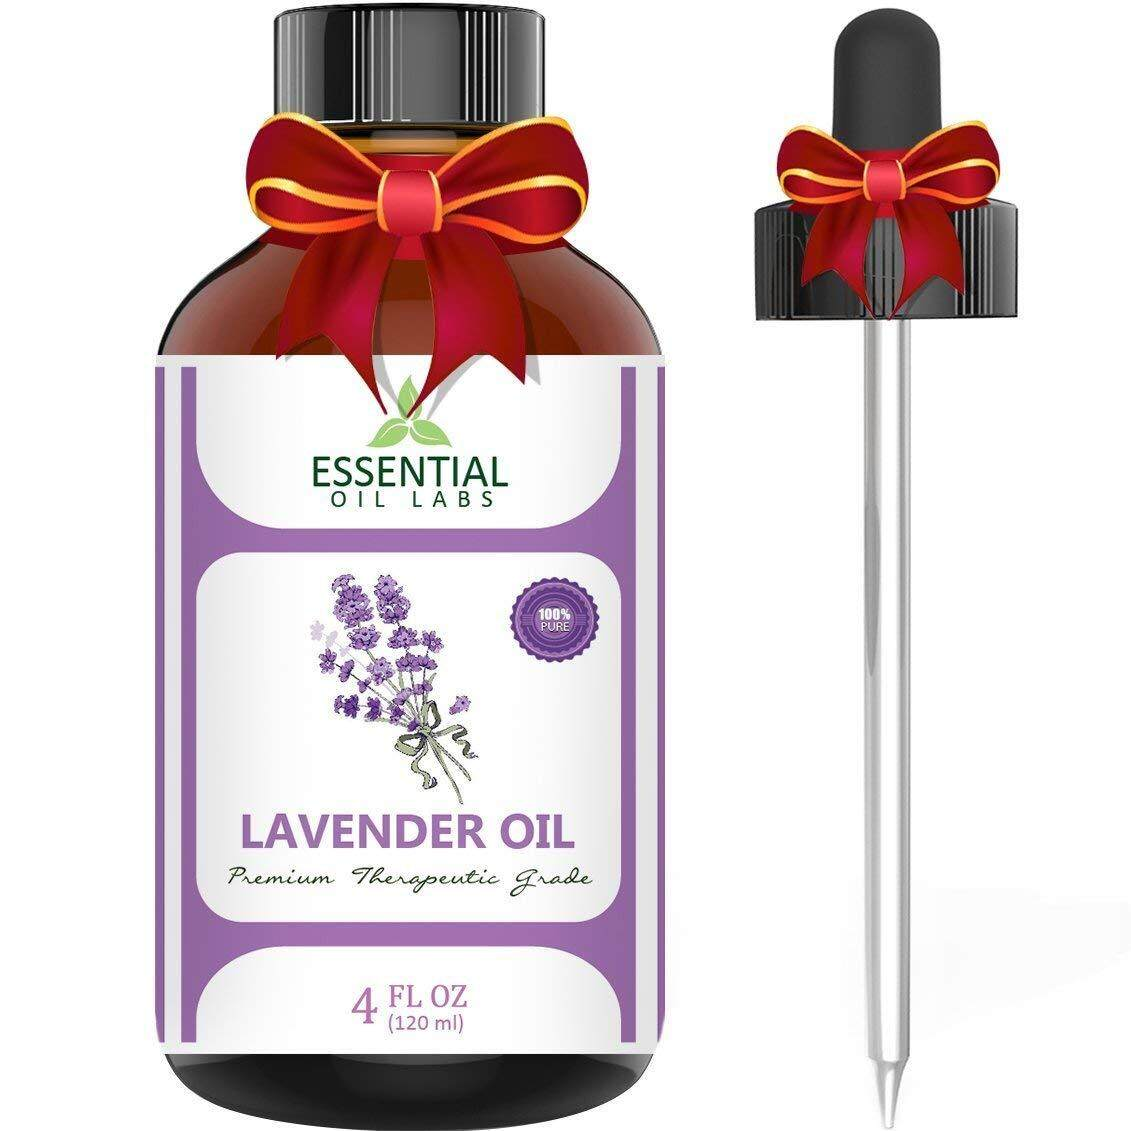 Essential Oil Labs Lavender Essential Oil - Highest Quality Therapeutic Grade Backed by Research - Largest 4 Oz Bottle with Premium Glass Dropper - 100% Pure and Natural - Guaranteed Results